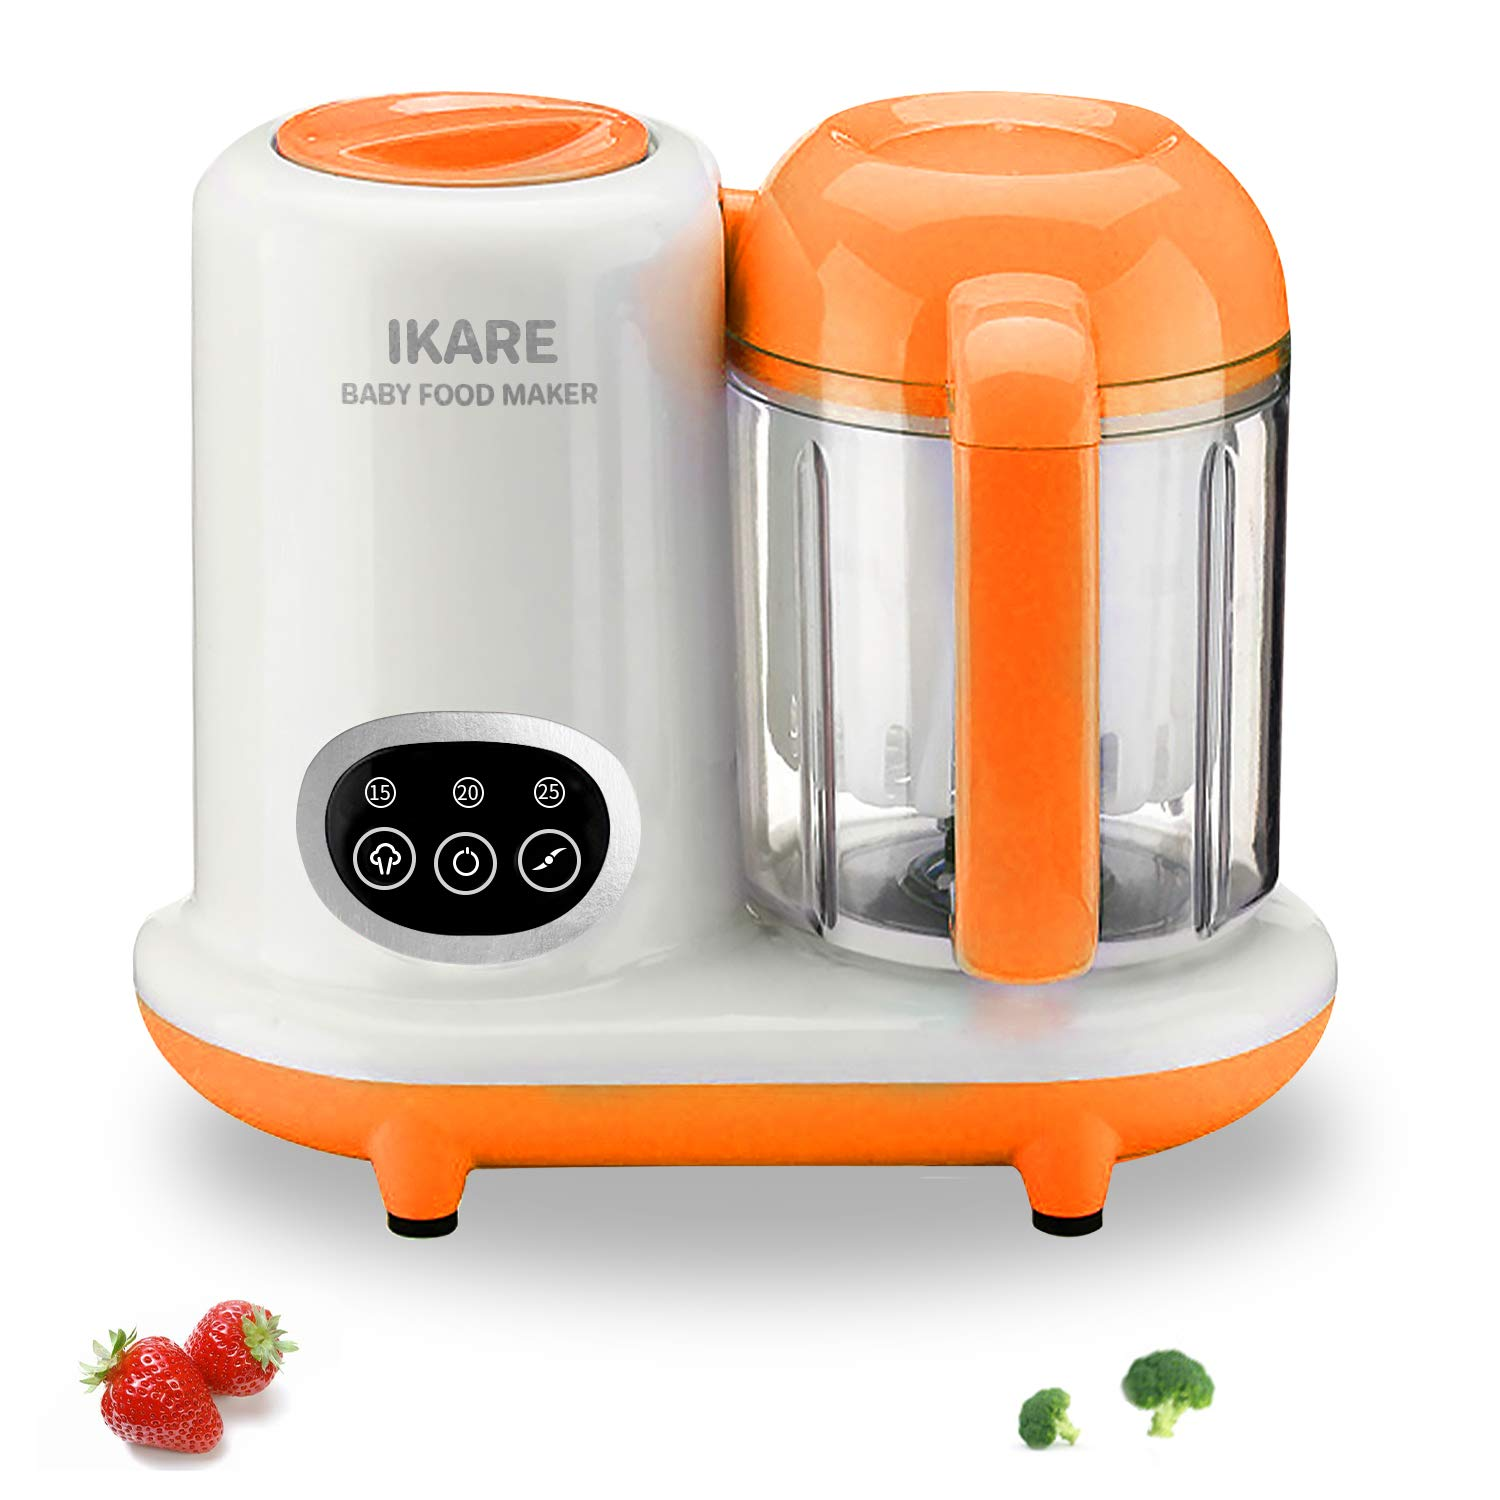 Baby Food Maker   Baby Food Processor   Puree Blender Multi-Function Steamer Grinder Blender, Touch Control Panel, Auto Shut-Off, 25 Oz Tritan Stirring Cup, Cook & Blend Homemade Baby Food in Minutes